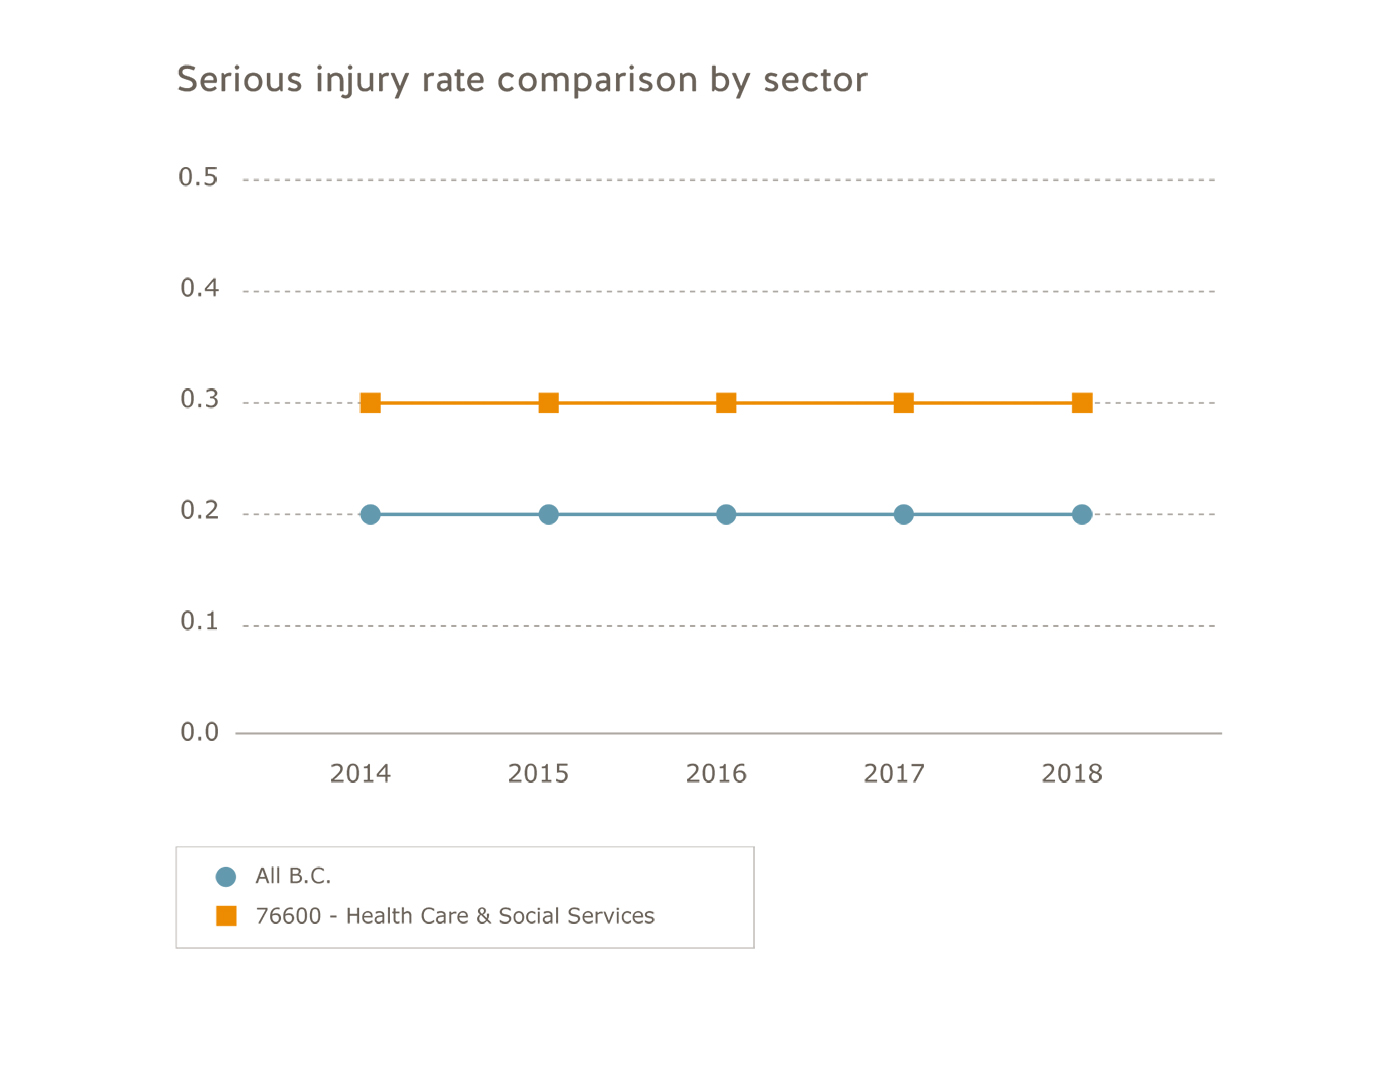 Health care sector serious injury rate comparison by sector for 2014 to 2018. All B.C.: 2014=0.2; 2015=0.2; 2016=0.2; 2017=0.2; 2018=0.2. Health care and social services: 2014=0.3; 2015=0.3; 2016=0.3; 2017=0.3; 2018=0.3.